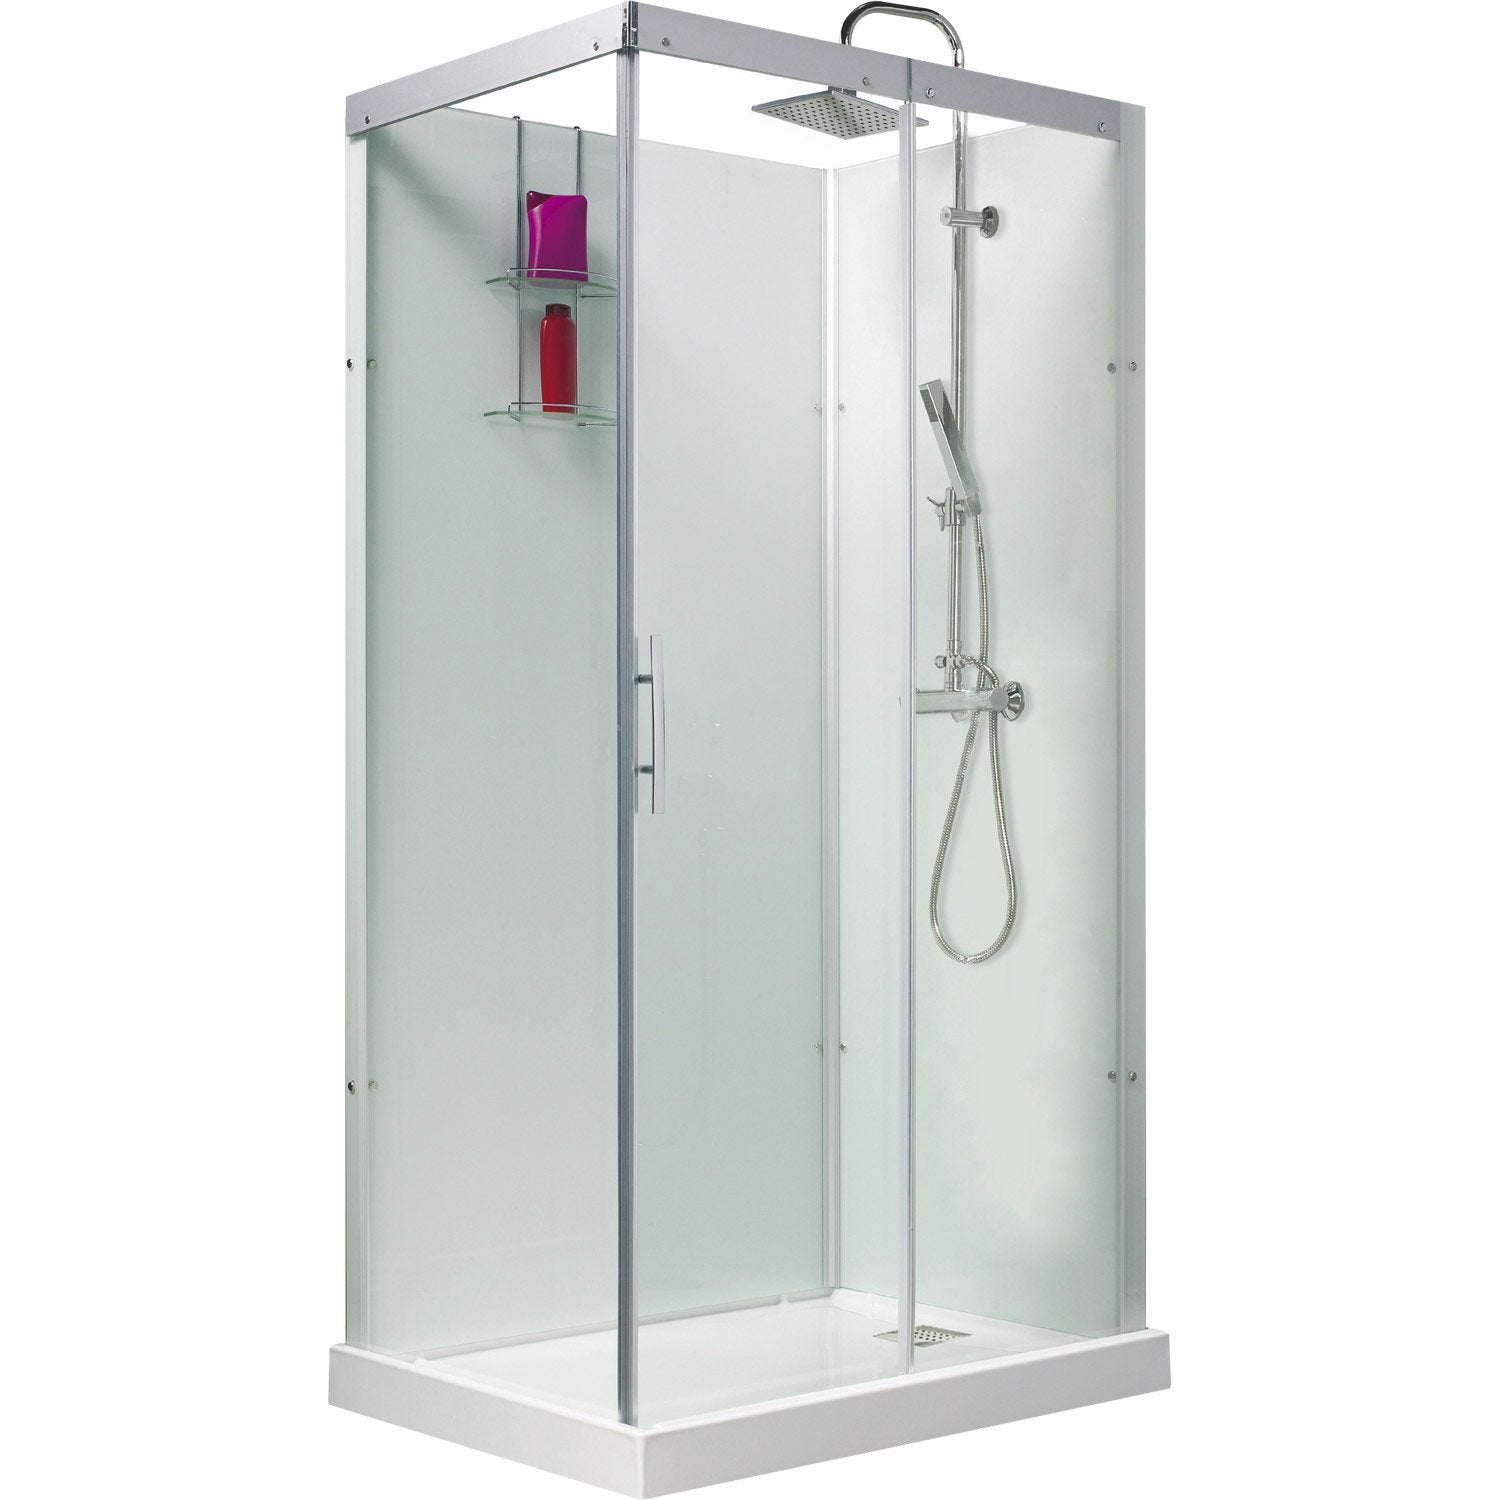 Cabine de douche rectangulaire 110x80 cm thalaglass 2 for Prix cabine de douche